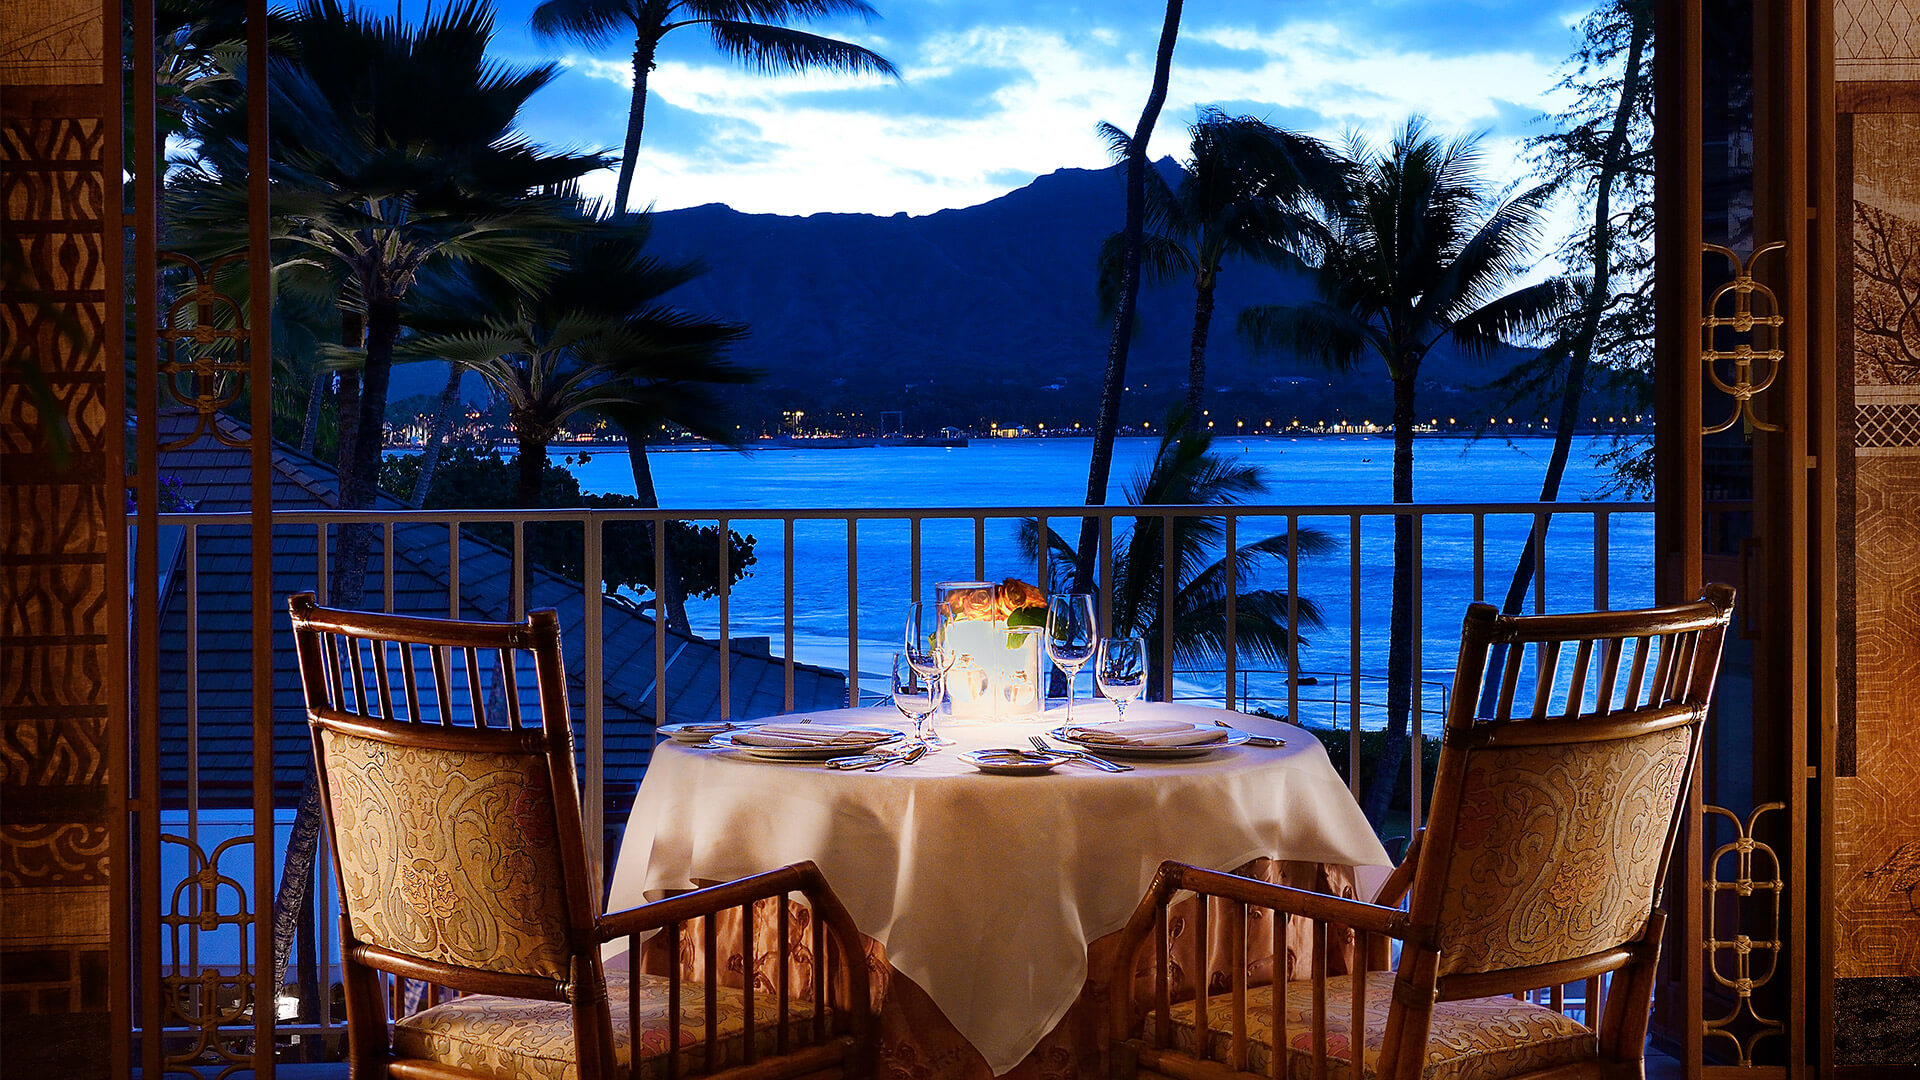 Table for two at La Mer overlooking the Pacific Ocean